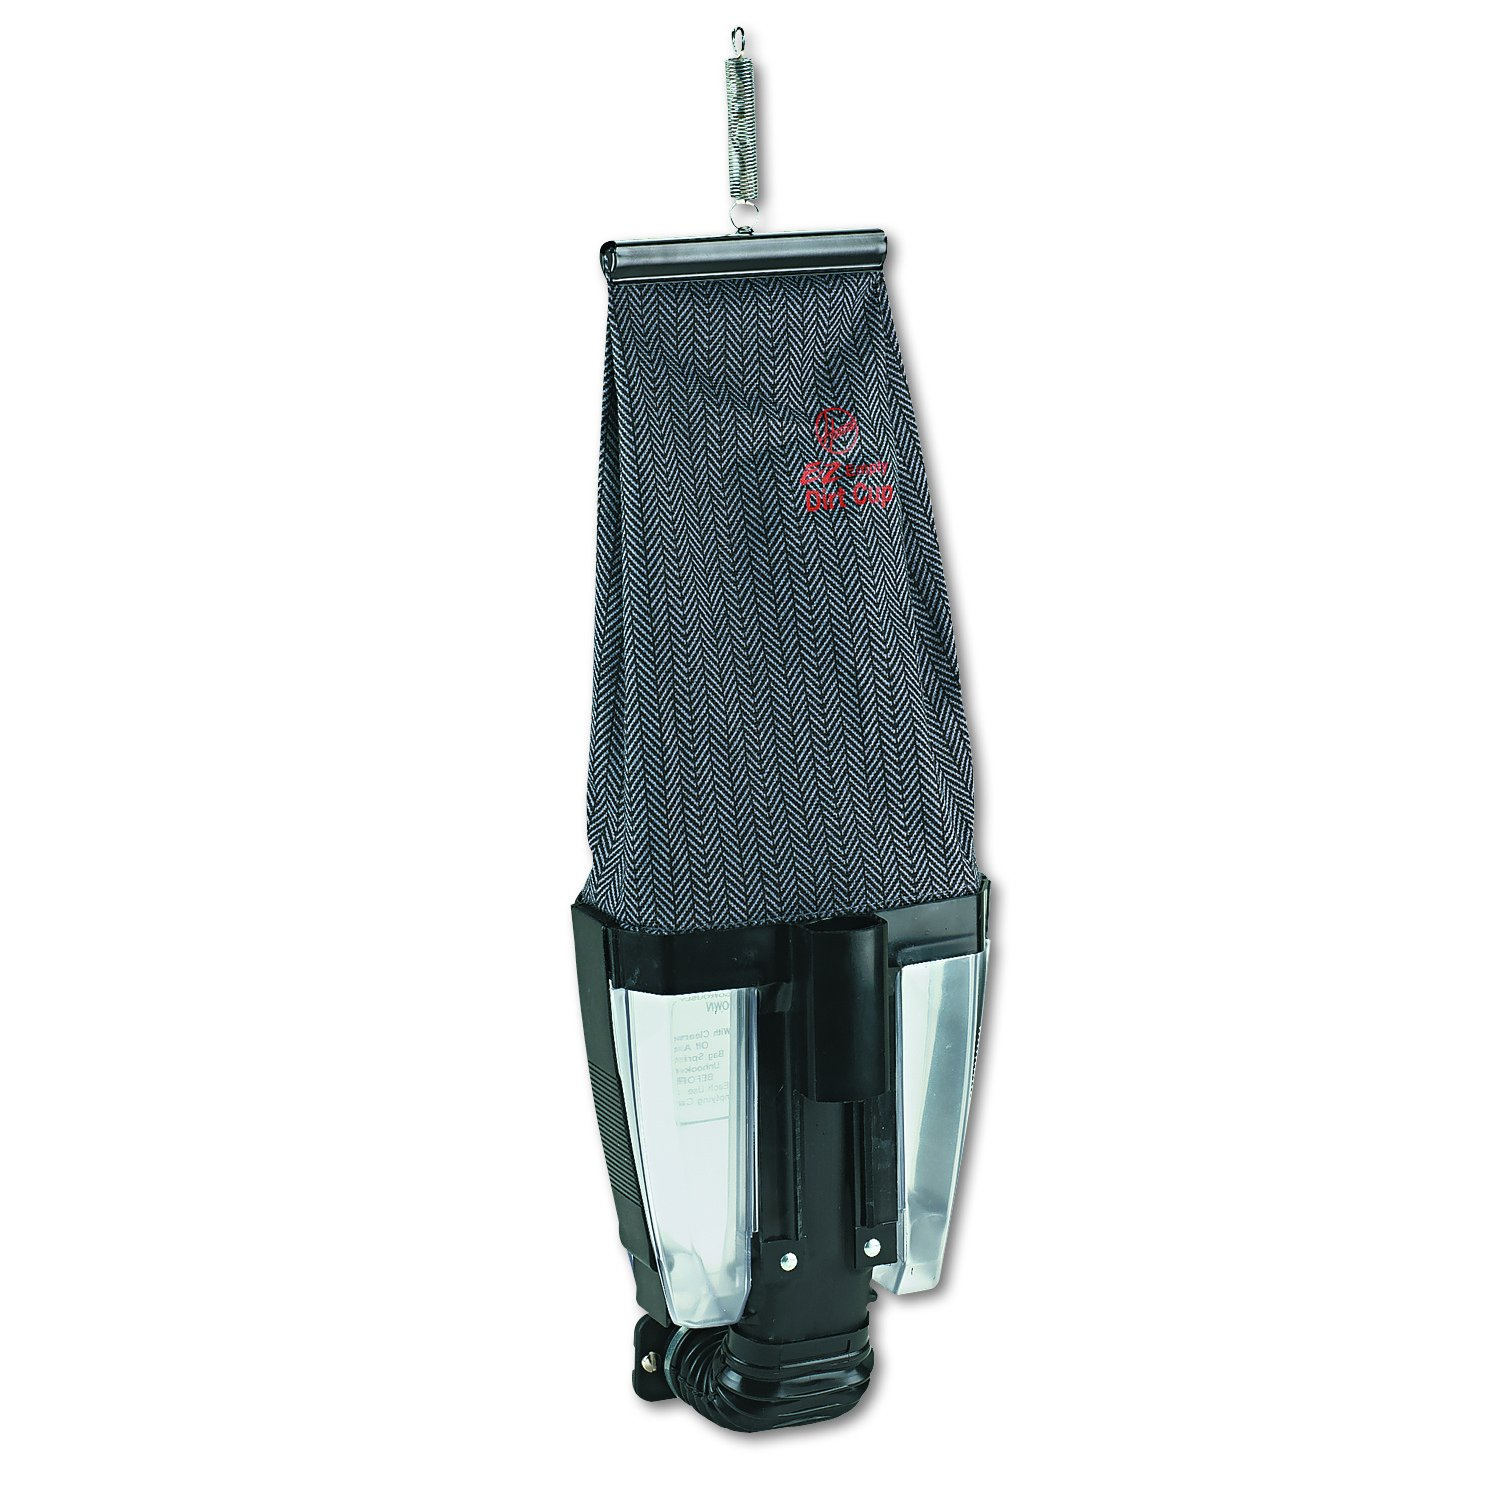 Hoover Commercial 58642015 E-Z Dump Dirt Cup Collection System for Conquest C1800 Vacuum